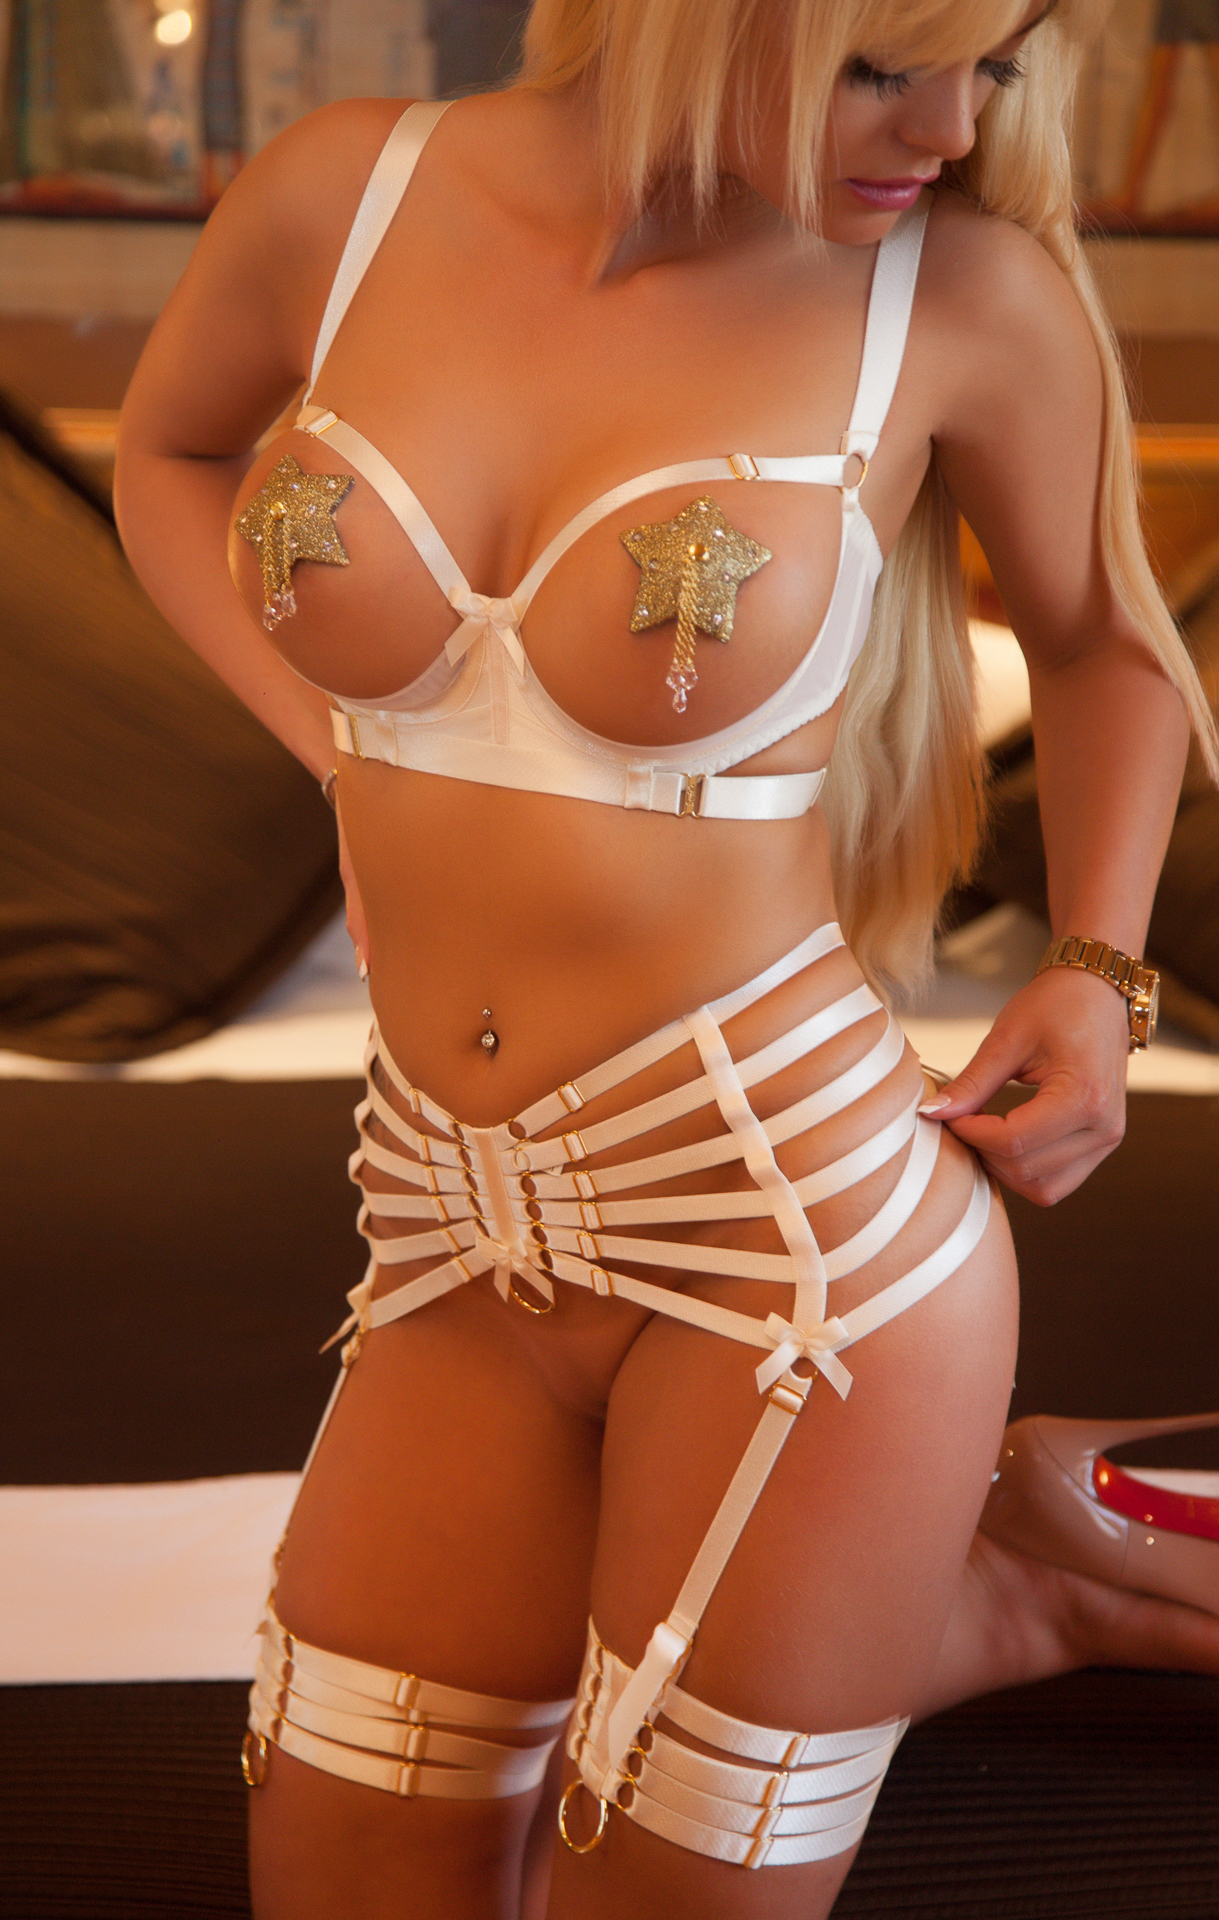 porno categorie escort girl st tropez